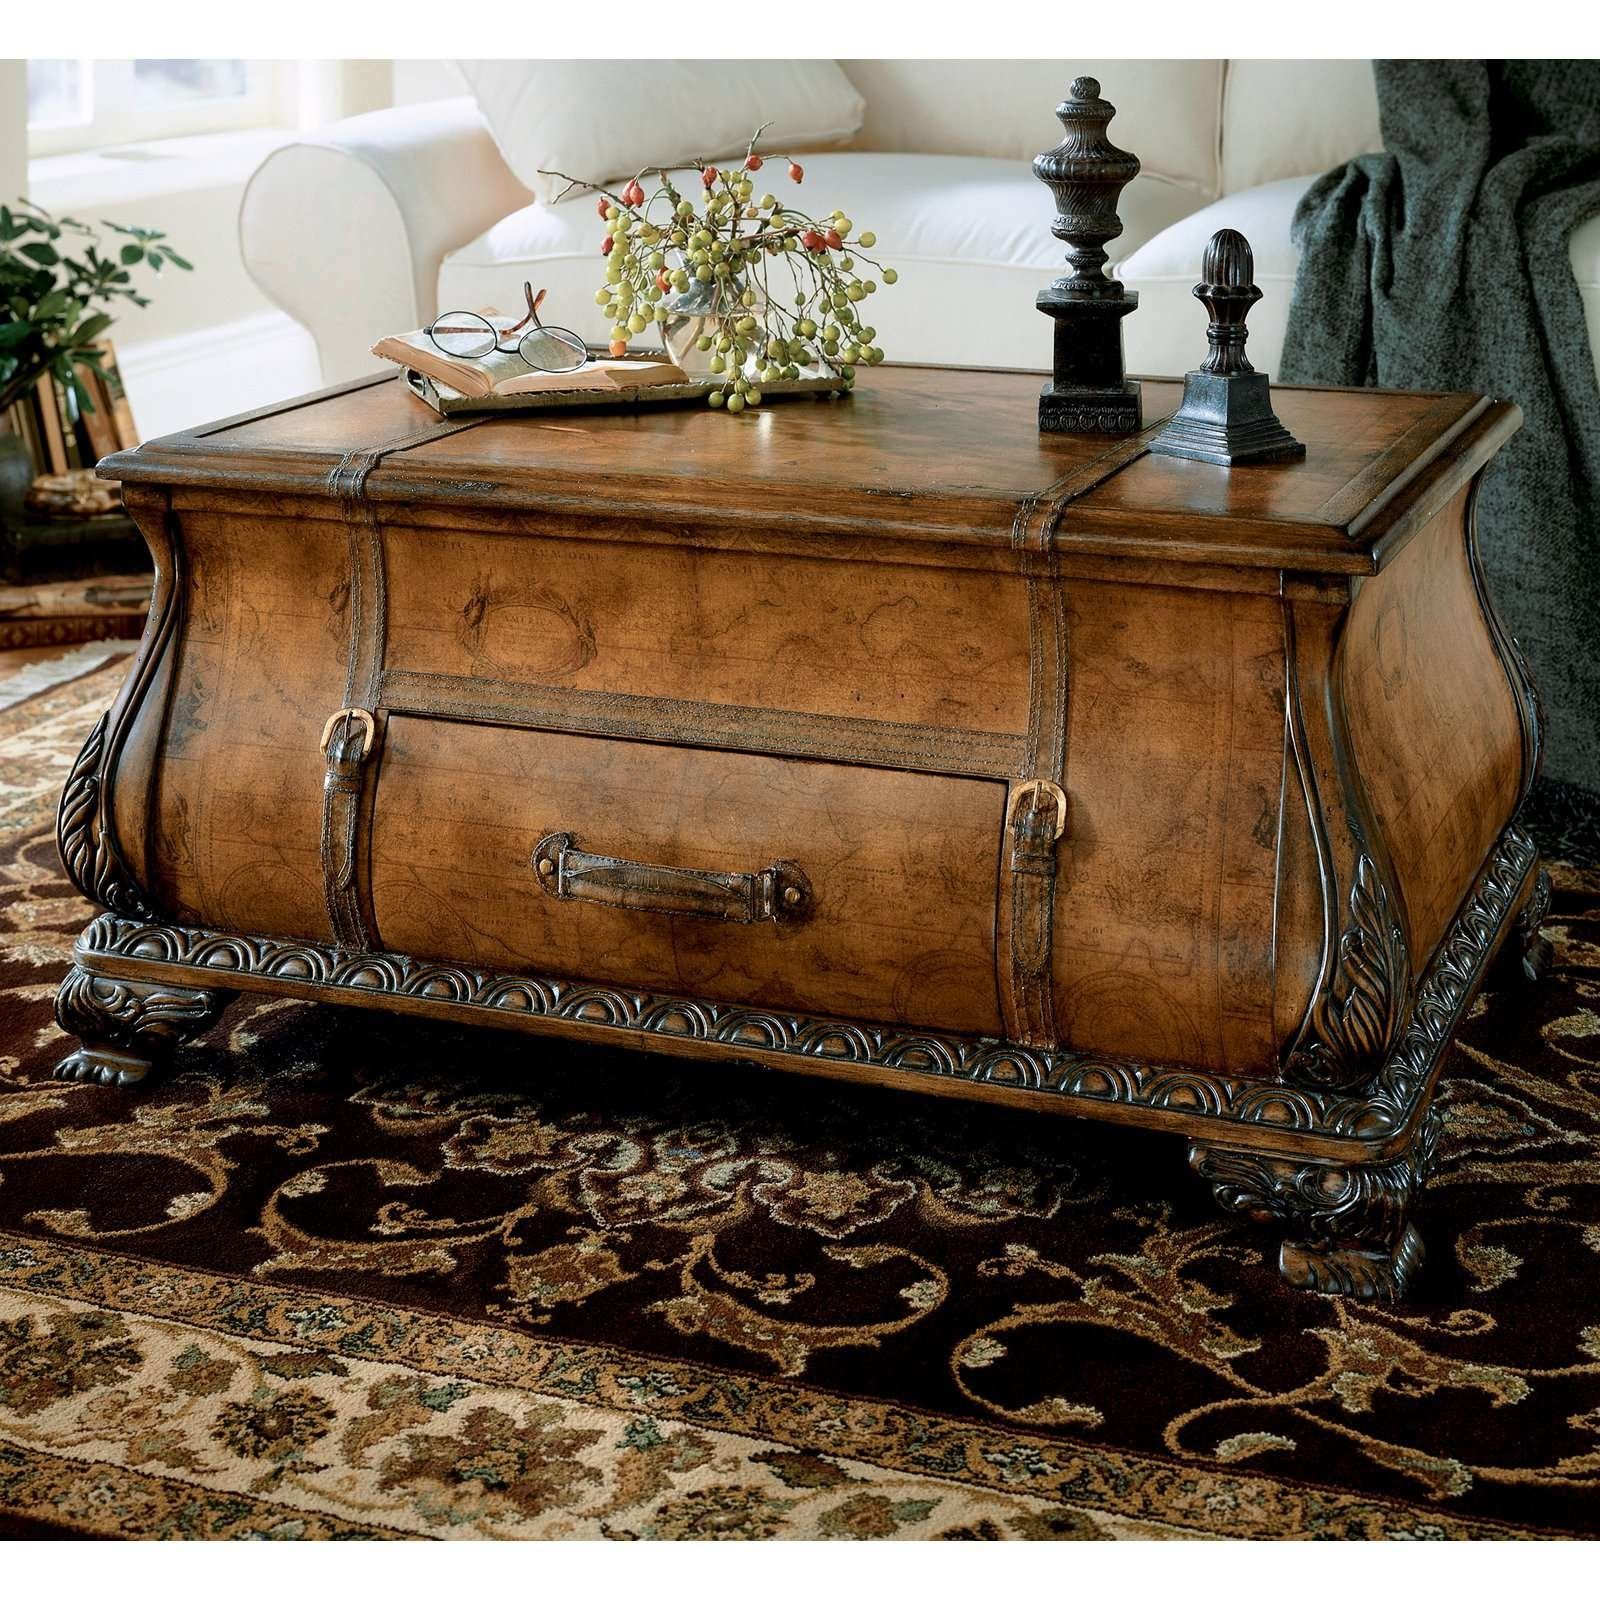 Fashionable Bombay Coffee Tables Pertaining To Butler Bombe Trunk Coffee Table – Heritage – Walmart (View 11 of 20)